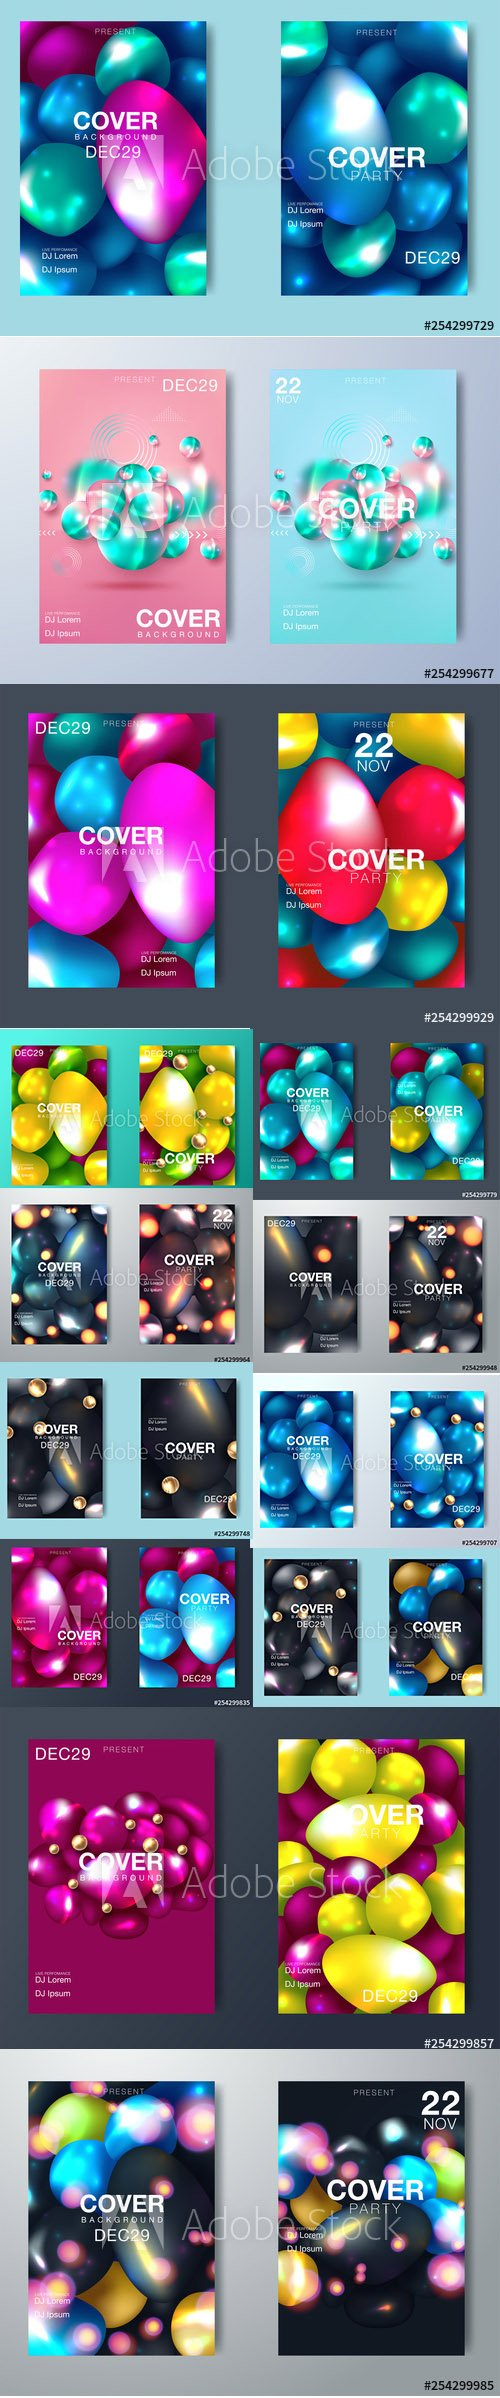 Modern Abstract Party Posters and Gradient Backgrounds